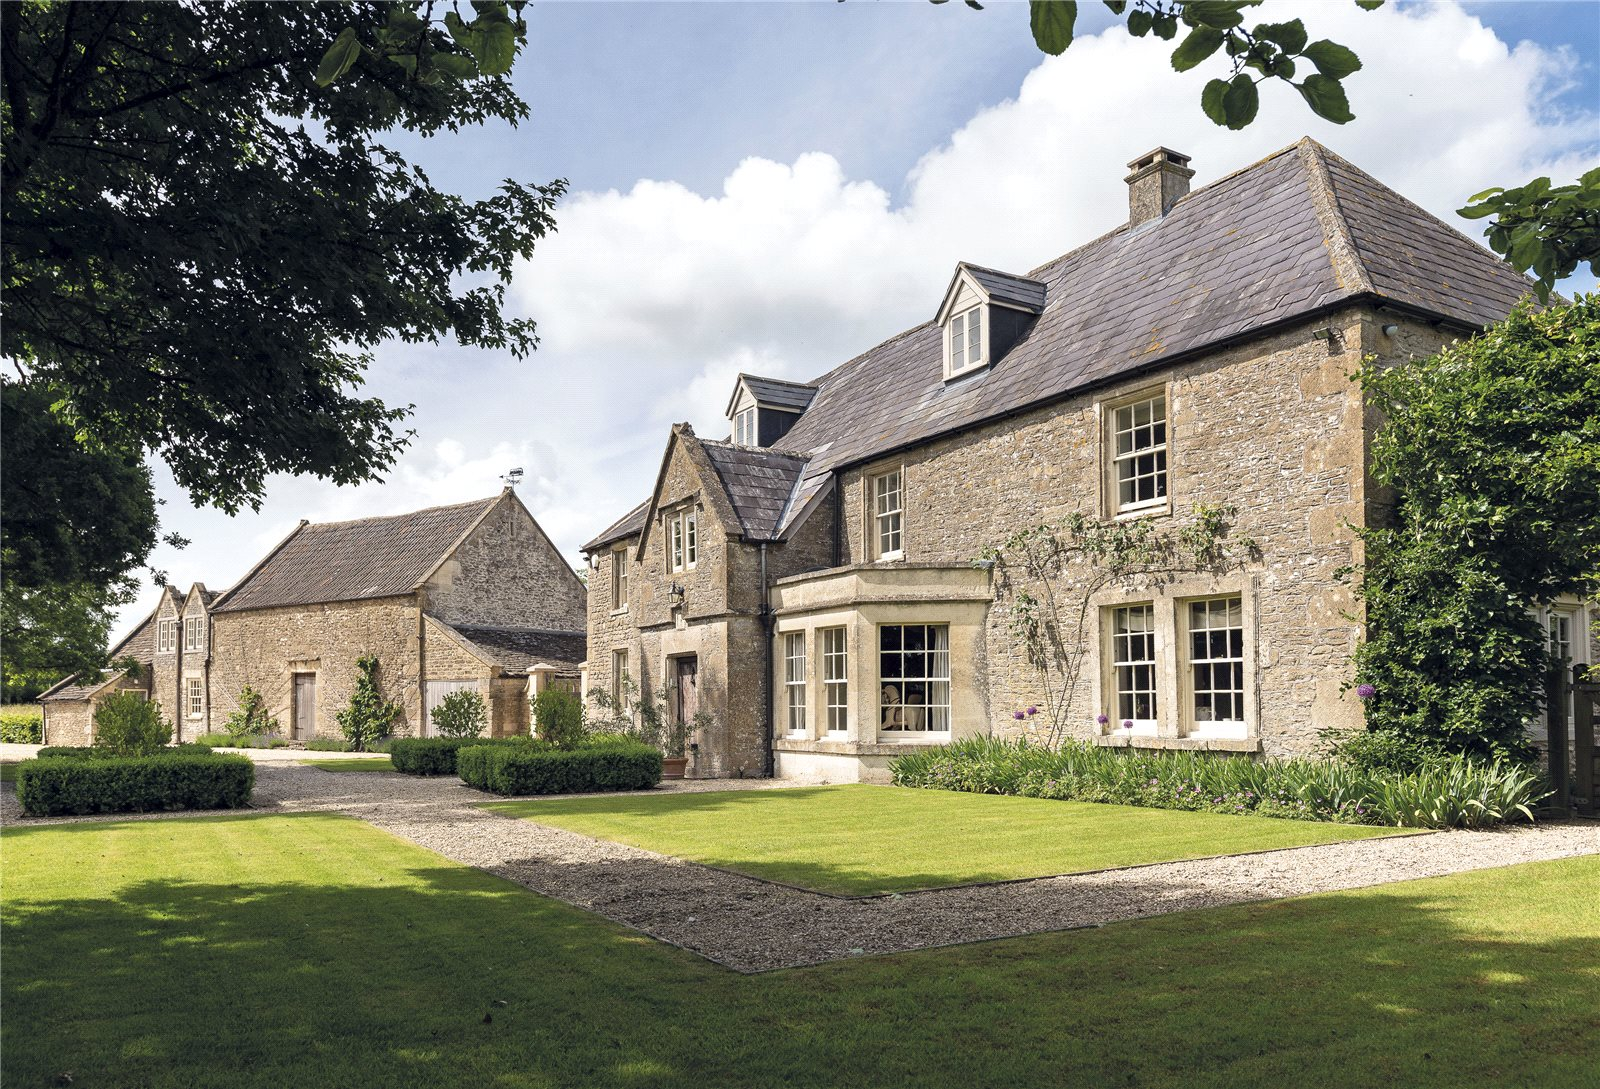 Maison unifamiliale pour l Vente à Ashley Green, Little Ashley, Bradford-on-Avon, Wiltshire, BA15 Bradford, Angleterre